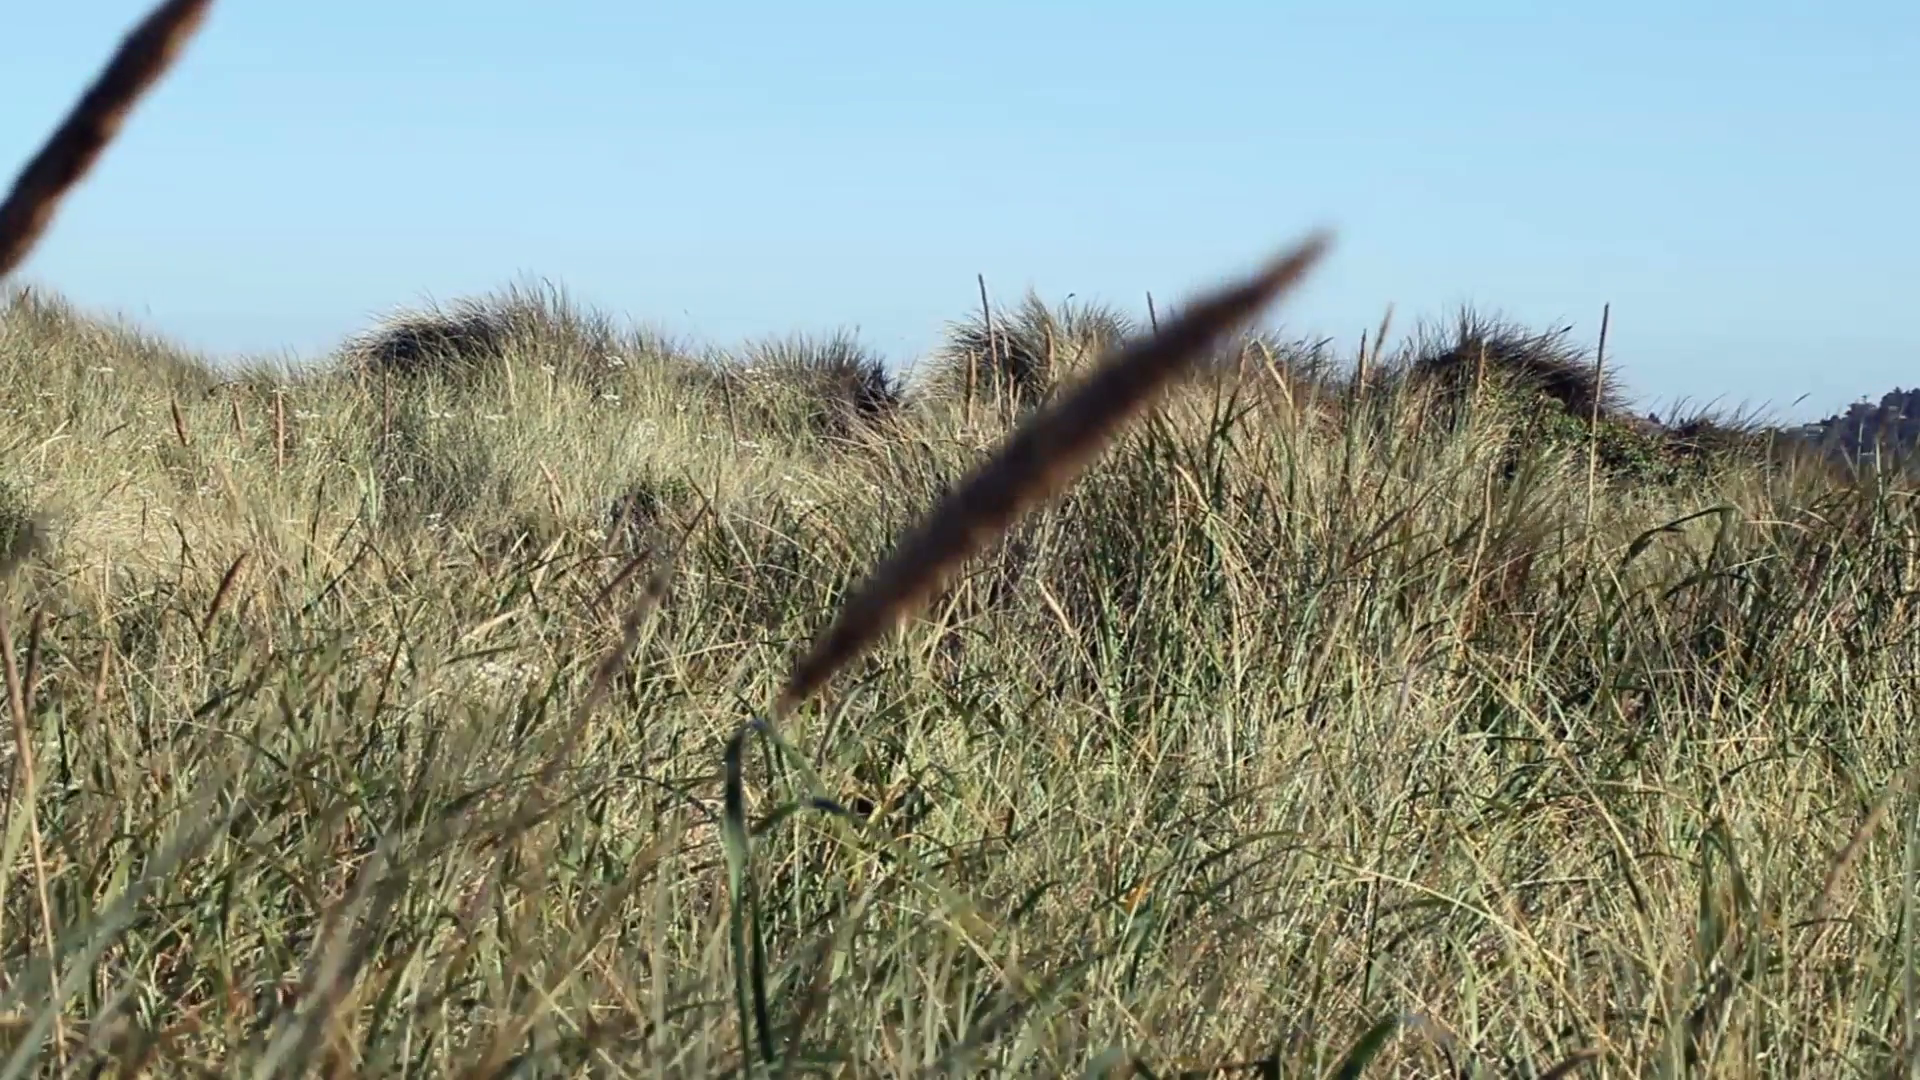 Low Angle View Of Wild Grass Swaying In Breeze With Blue Sky Stock ...